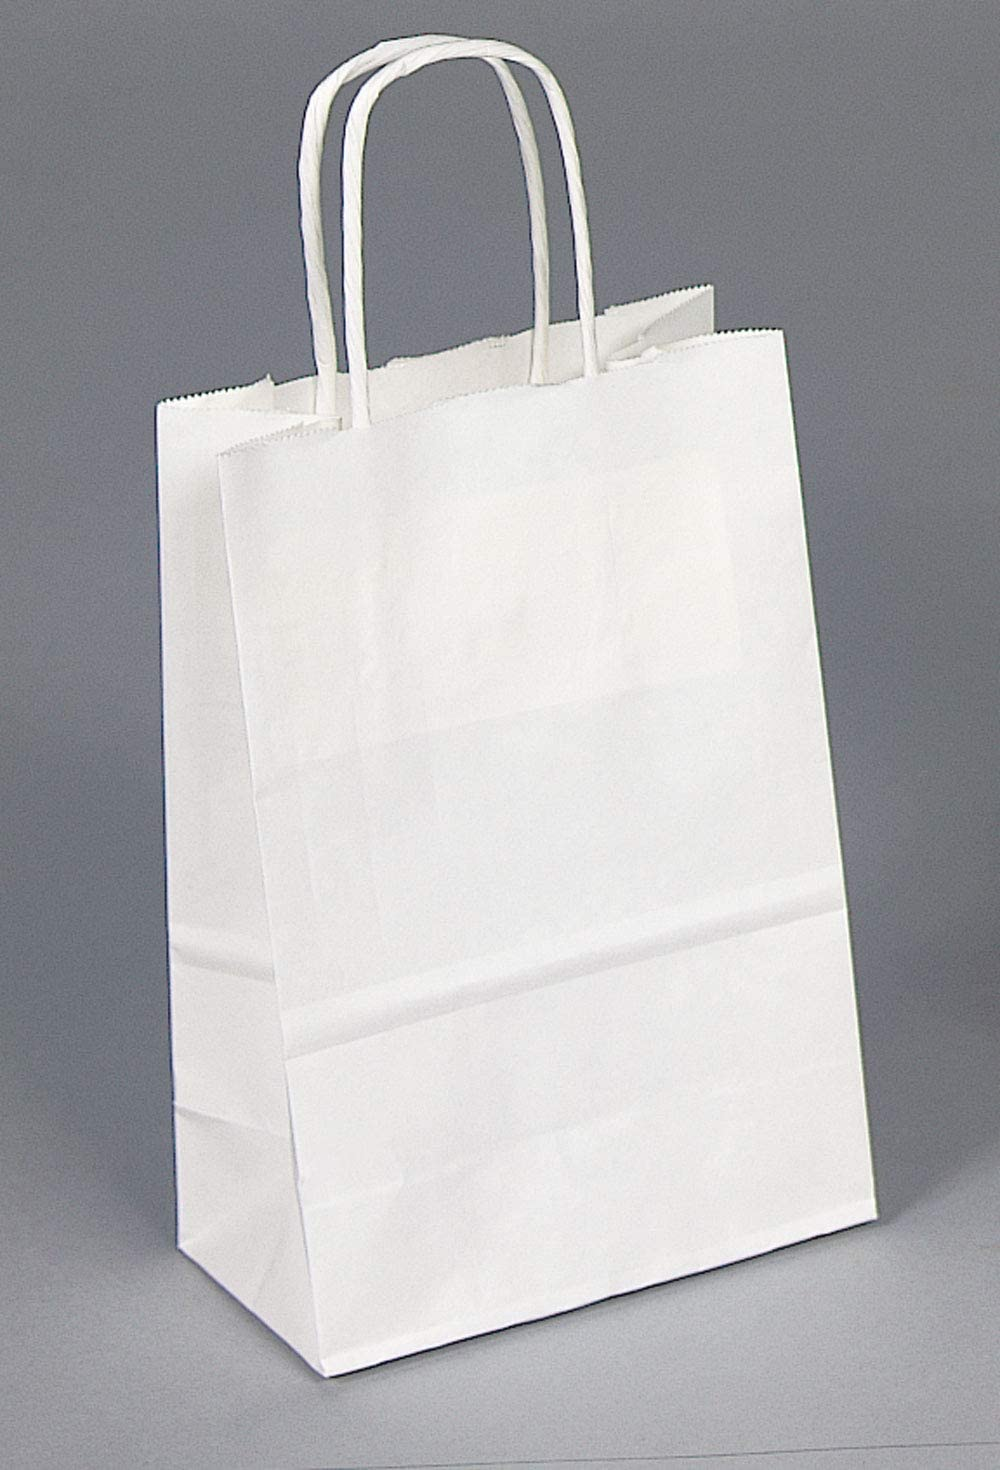 A Package 4 It, 250Pcs, 5x3x8 Inches Kraft Paper Bags with Handles Bulk Gift Bags Shopping Bags for Grocery, Merchandise, Party, 100% Recyclable Small White Paper Bags